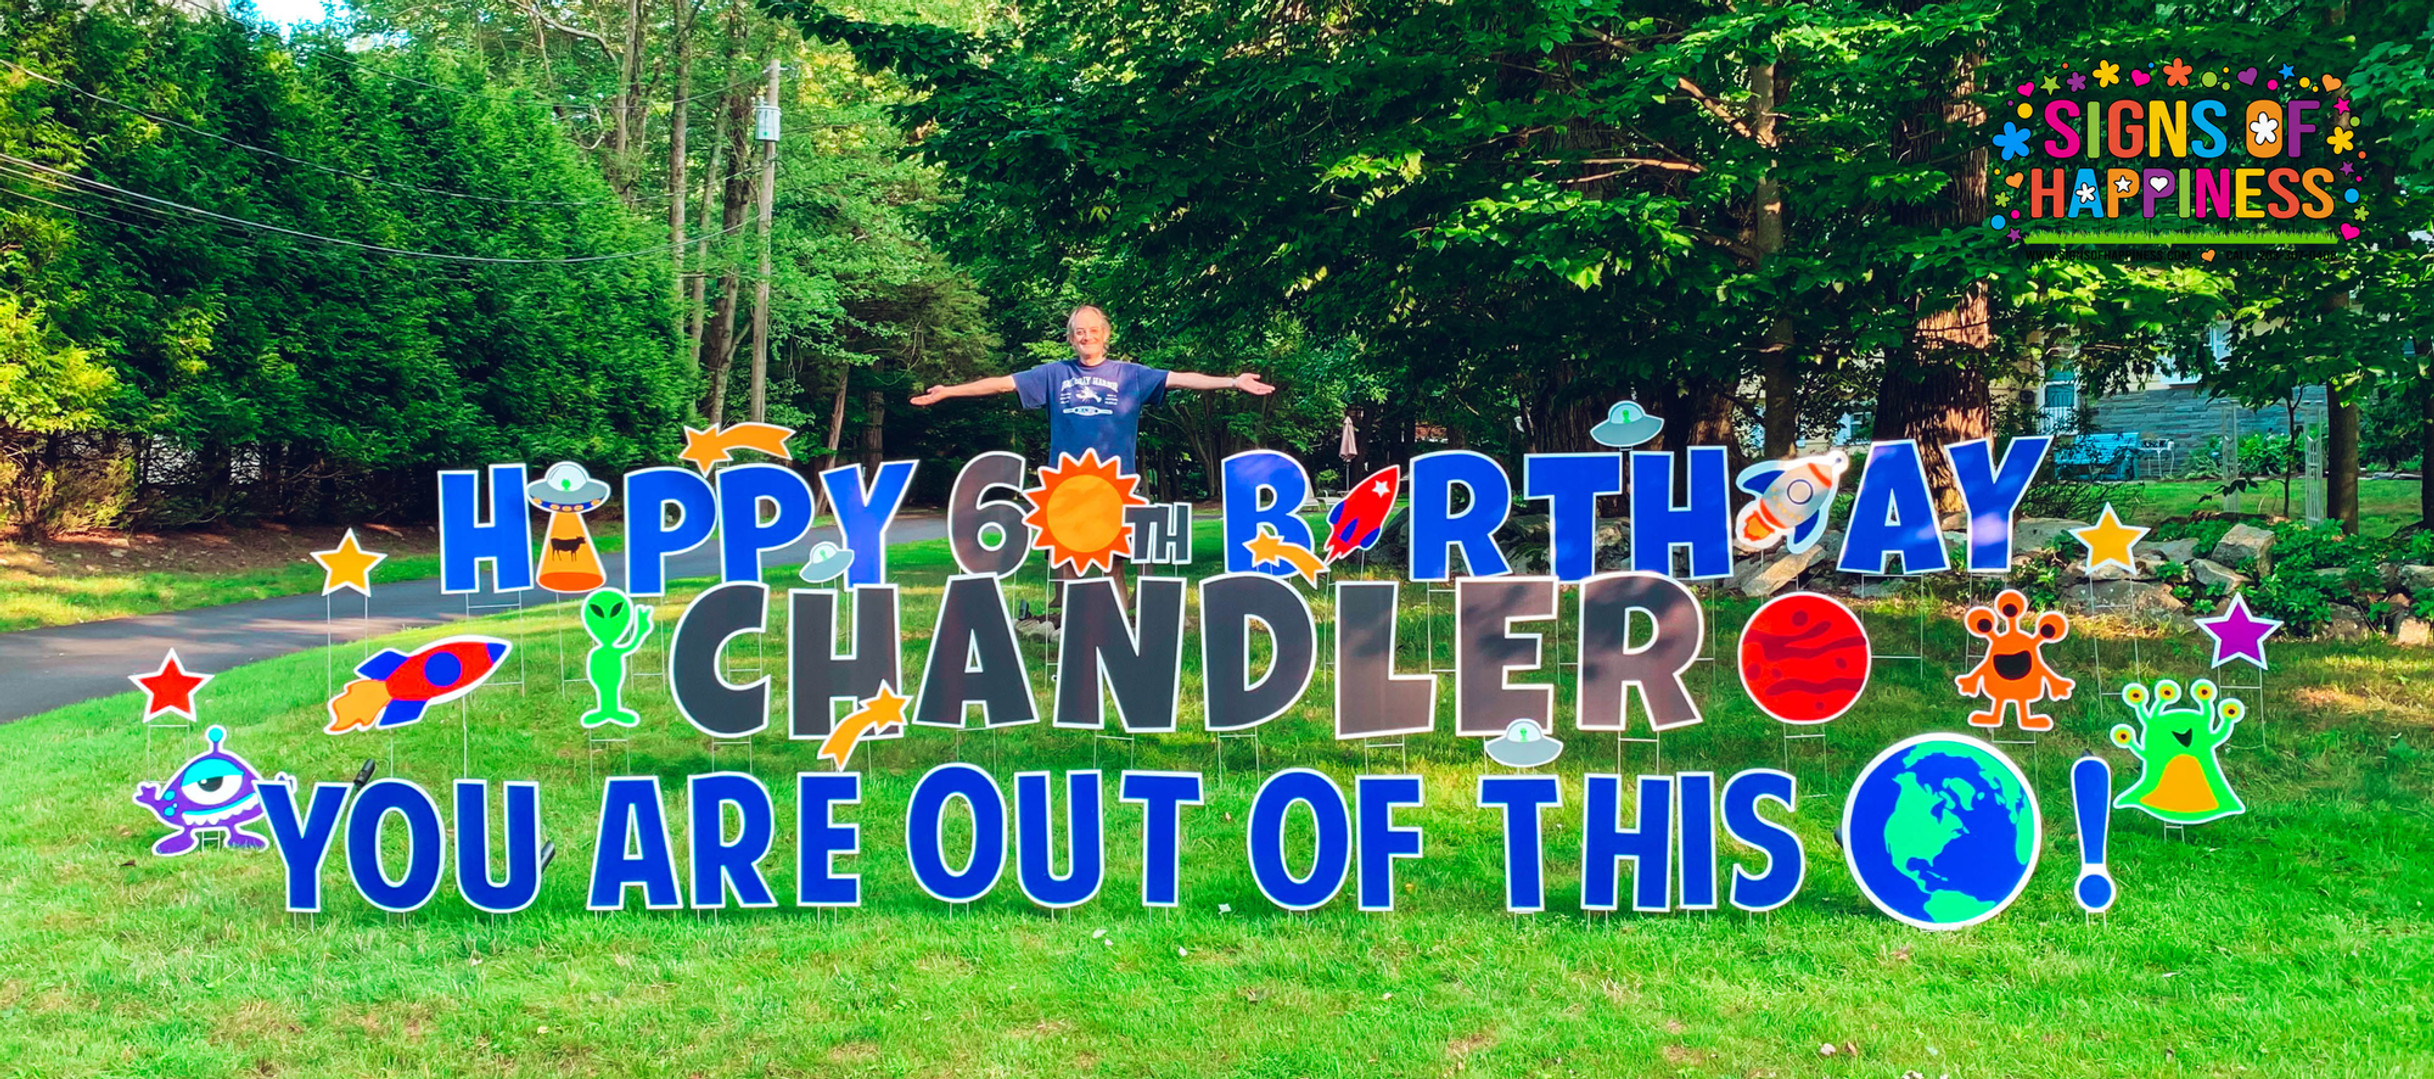 chandlerbday.jpg